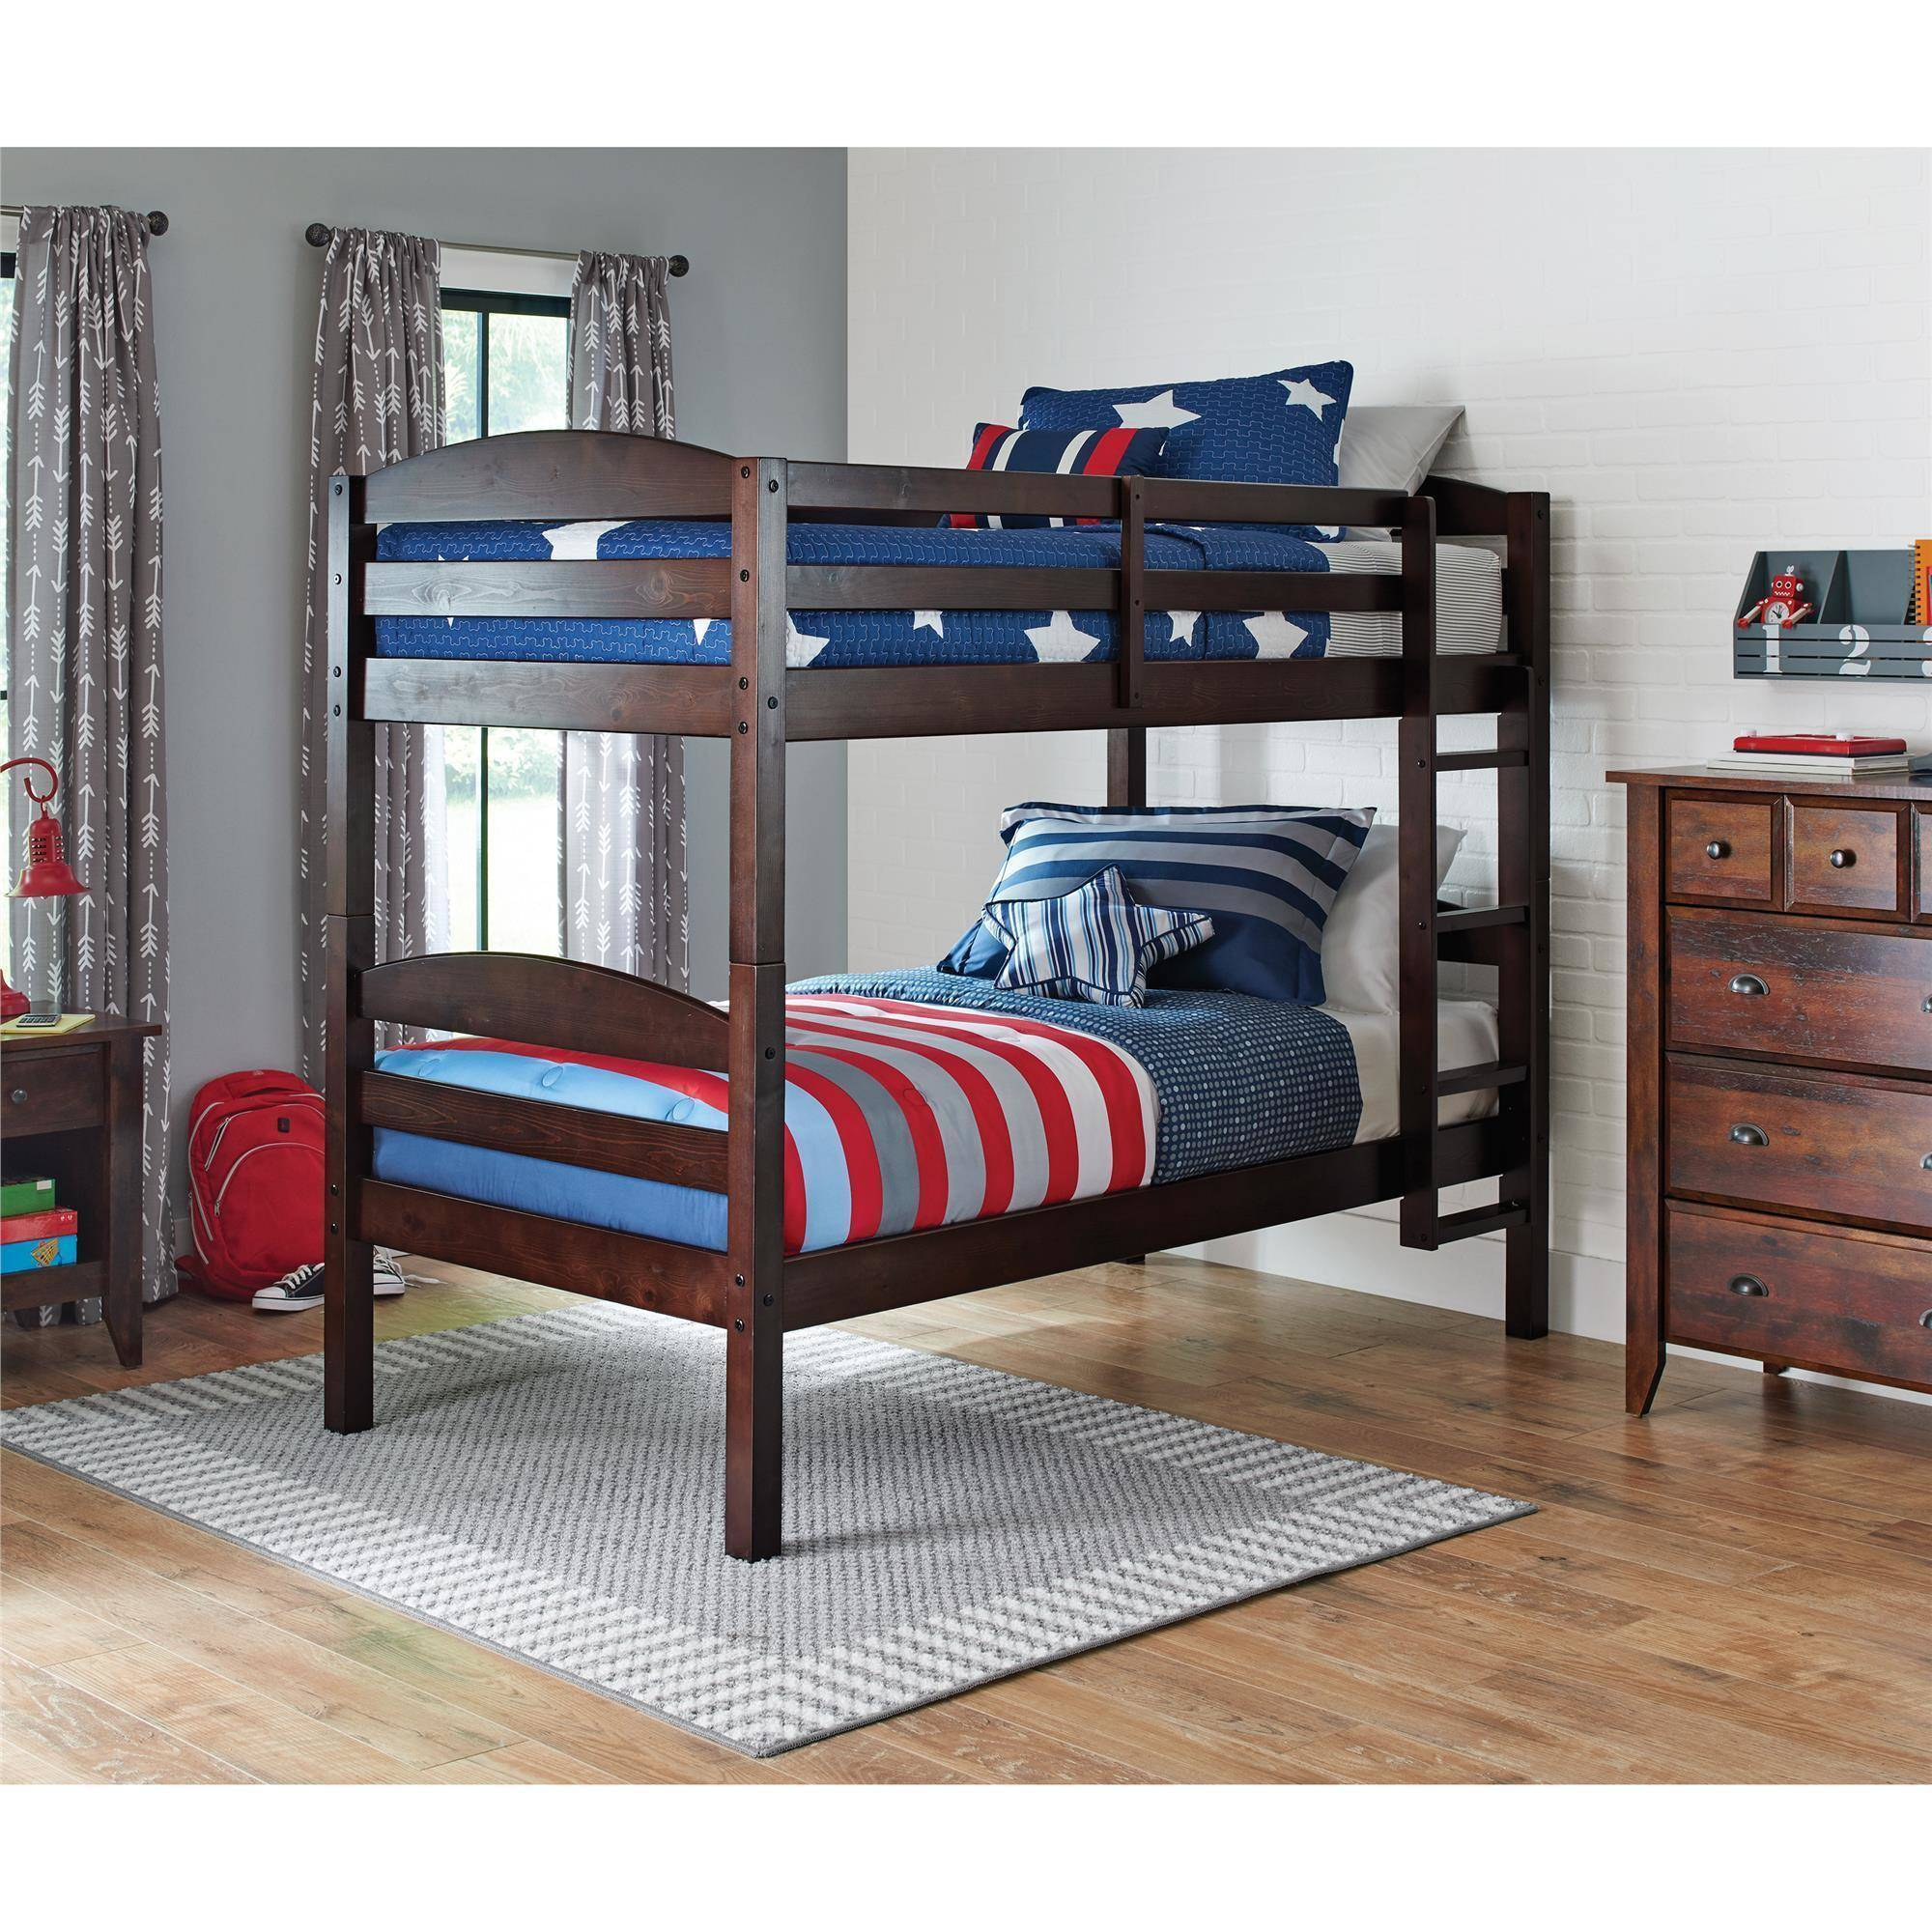 Bunk Beds Twin Over Twin Furniture Bedroom Ladder Wood Convertible Espresso  eBay